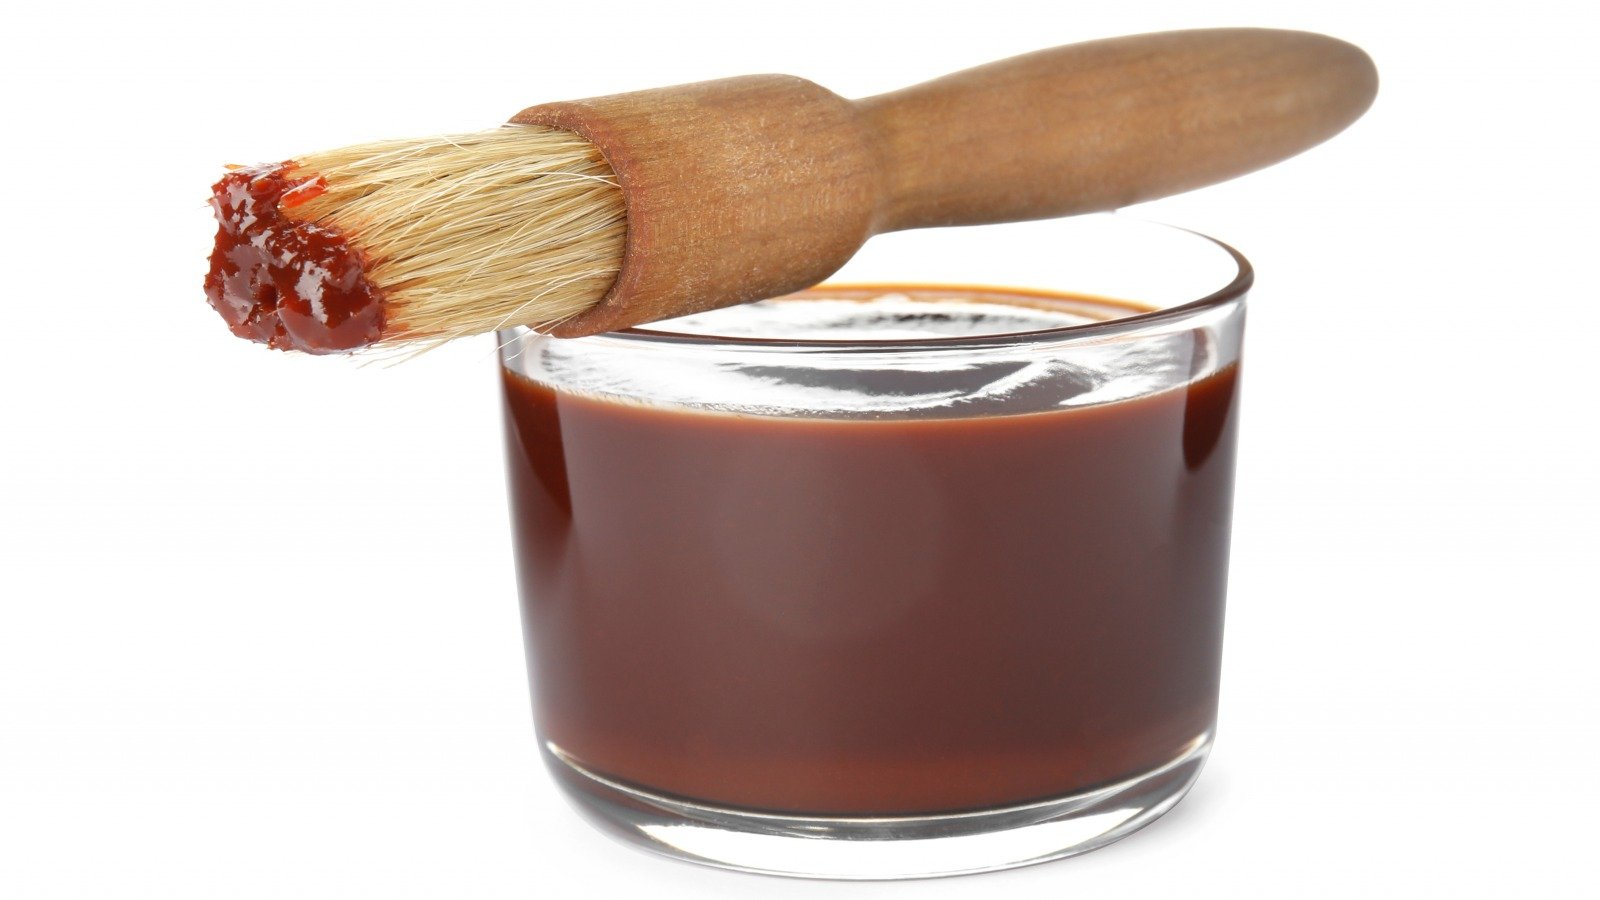 Fast Food Restaurant BBQ Sauces Ranked Worst To Best